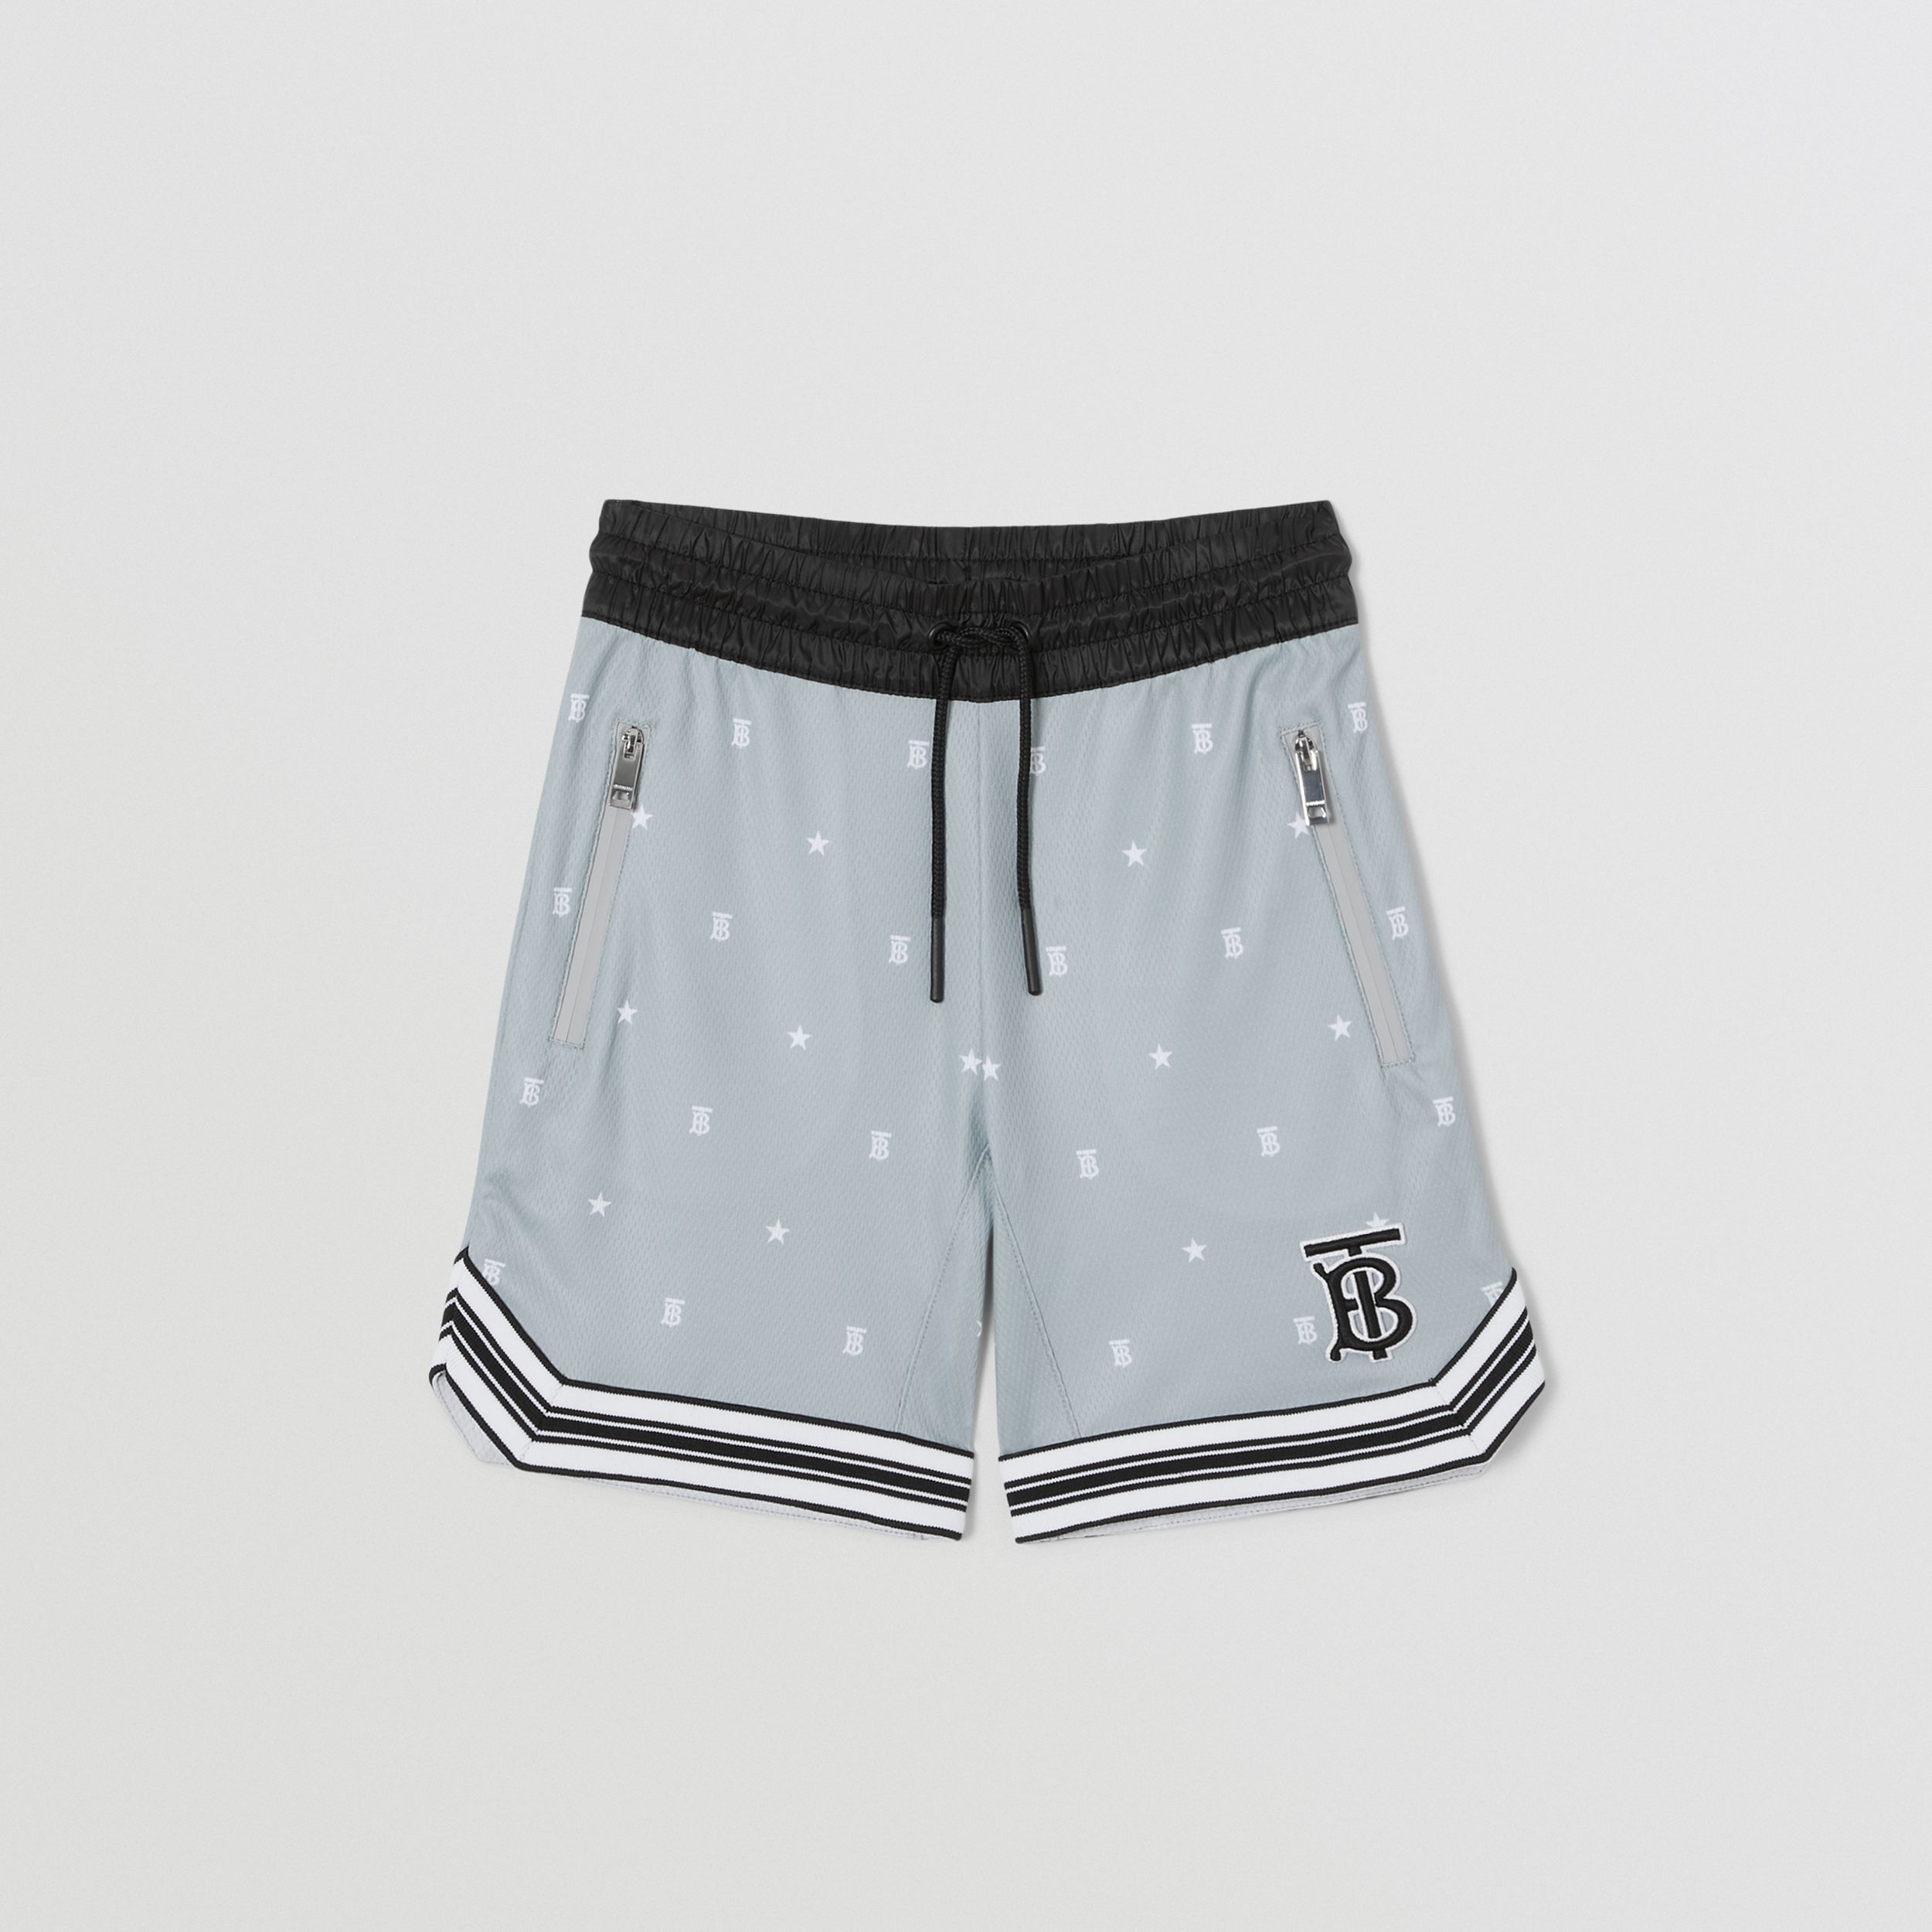 Star and Monogram Motif Jersey Mesh Shorts in Light Grey | Burberry - 1